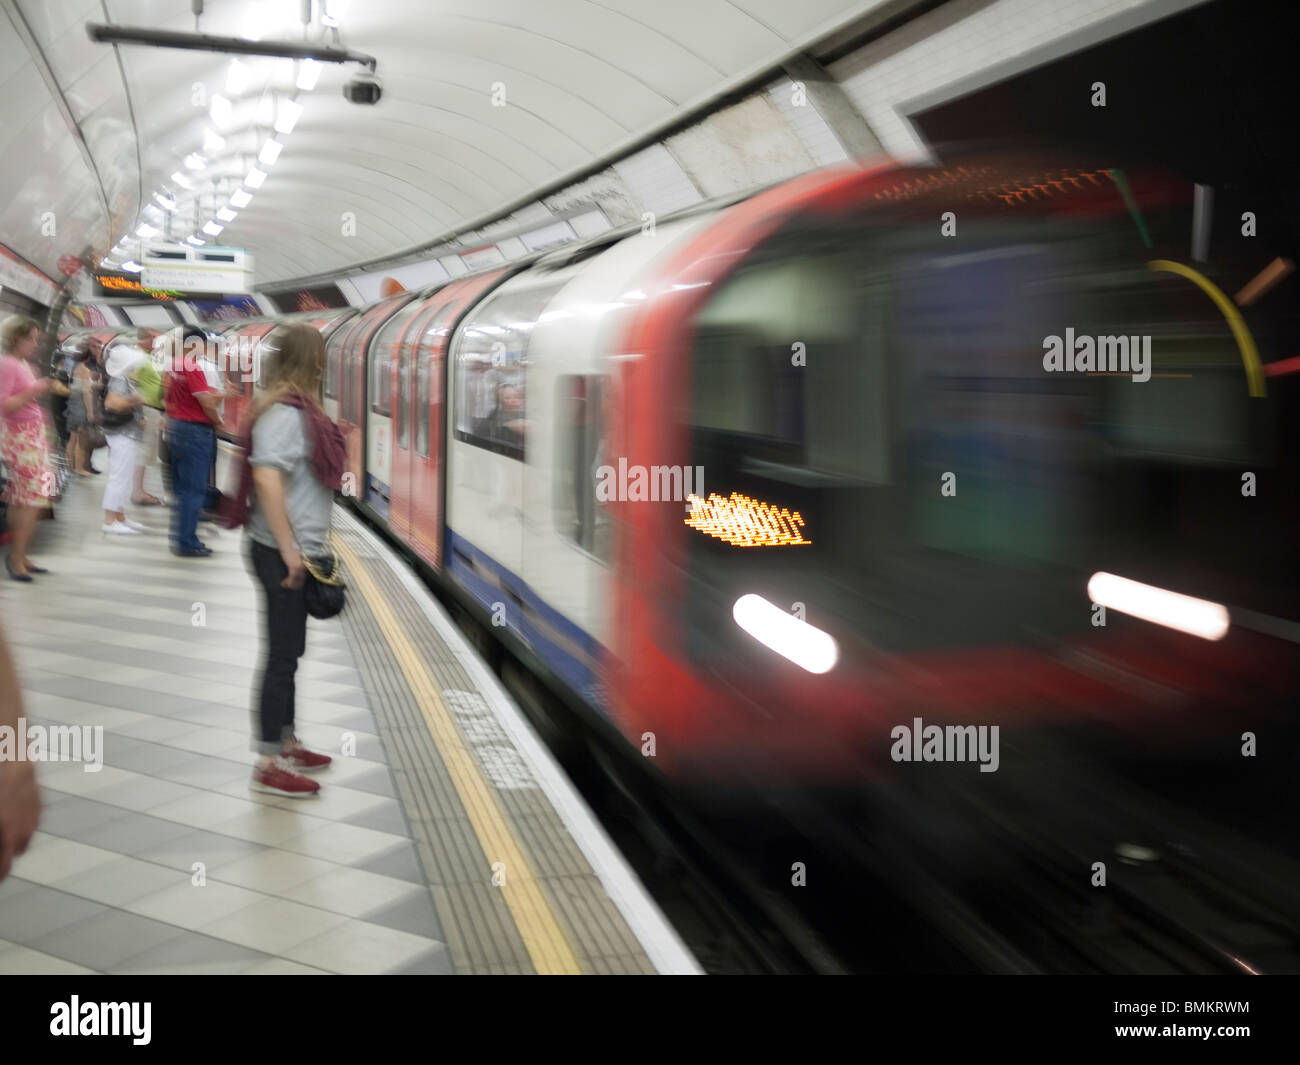 London Underground train arriving at station - Stock Image